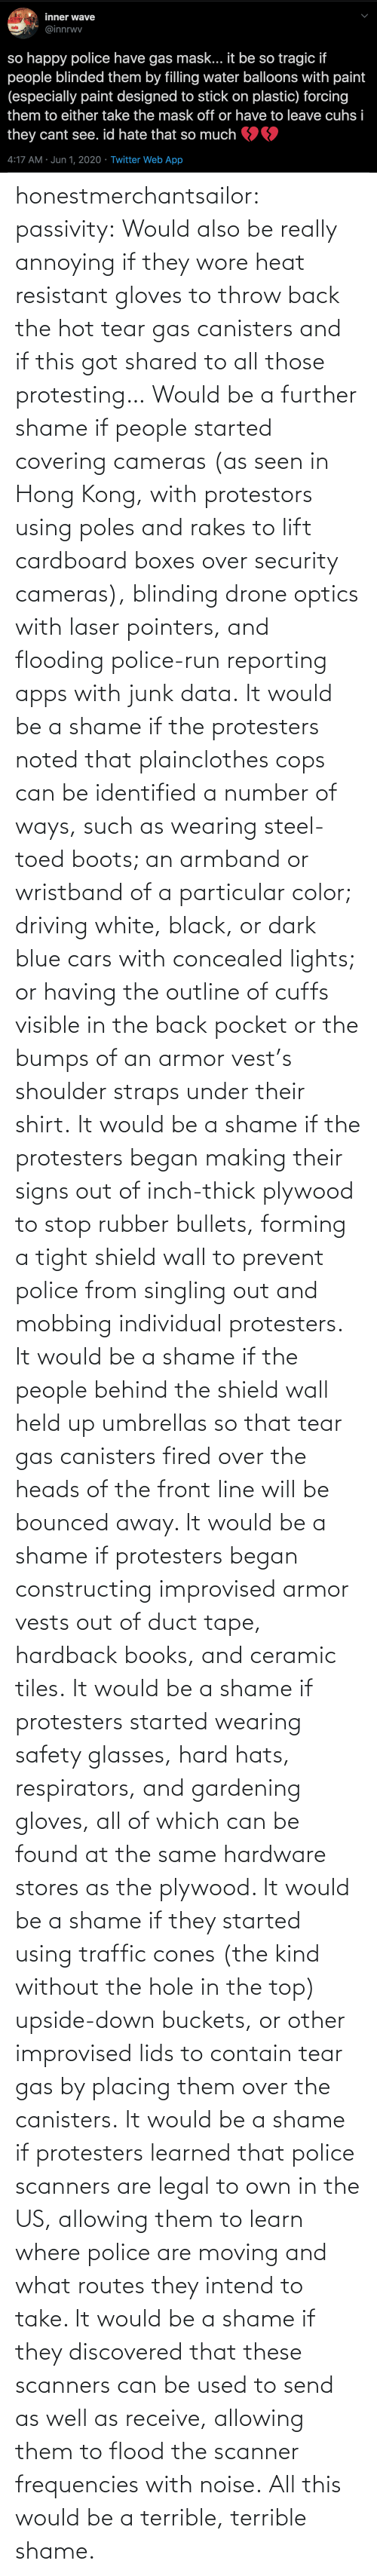 hole: honestmerchantsailor:  passivity: Would also be really annoying if they wore heat resistant gloves to throw back the hot tear gas canisters and if this got shared to all those protesting… Would be a further shame if people started covering cameras (as seen in Hong Kong, with protestors using poles and rakes to lift cardboard boxes over security cameras), blinding drone optics with laser pointers, and flooding police-run reporting apps with junk data. It would be a shame if the protesters noted that plainclothes cops can be identified a number of ways, such as wearing steel-toed boots; an armband or wristband of a particular color; driving white, black, or dark blue cars with concealed lights; or having the outline of cuffs visible in the back pocket or the bumps of an armor vest's shoulder straps under their shirt. It would be a shame if the protesters began making their signs out of inch-thick plywood to stop rubber bullets, forming a tight shield wall to prevent police from singling out and mobbing individual protesters. It would be a shame if the people behind the shield wall held up umbrellas so that tear gas canisters fired over the heads of the front line will be bounced away. It would be a shame if protesters began constructing improvised armor vests out of duct tape, hardback books, and ceramic tiles. It would be a shame if protesters started wearing safety glasses, hard hats, respirators, and gardening gloves, all of which can be found at the same hardware stores as the plywood. It would be a shame if they started using traffic cones (the kind without the hole in the top) upside-down buckets, or other improvised lids to contain tear gas by placing them over the canisters. It would be a shame if protesters learned that police scanners are legal to own in the US, allowing them to learn where police are moving and what routes they intend to take. It would be a shame if they discovered that these scanners can be used to send as well as receive, allowing them to flood the scanner frequencies with noise. All this would be a terrible, terrible shame.